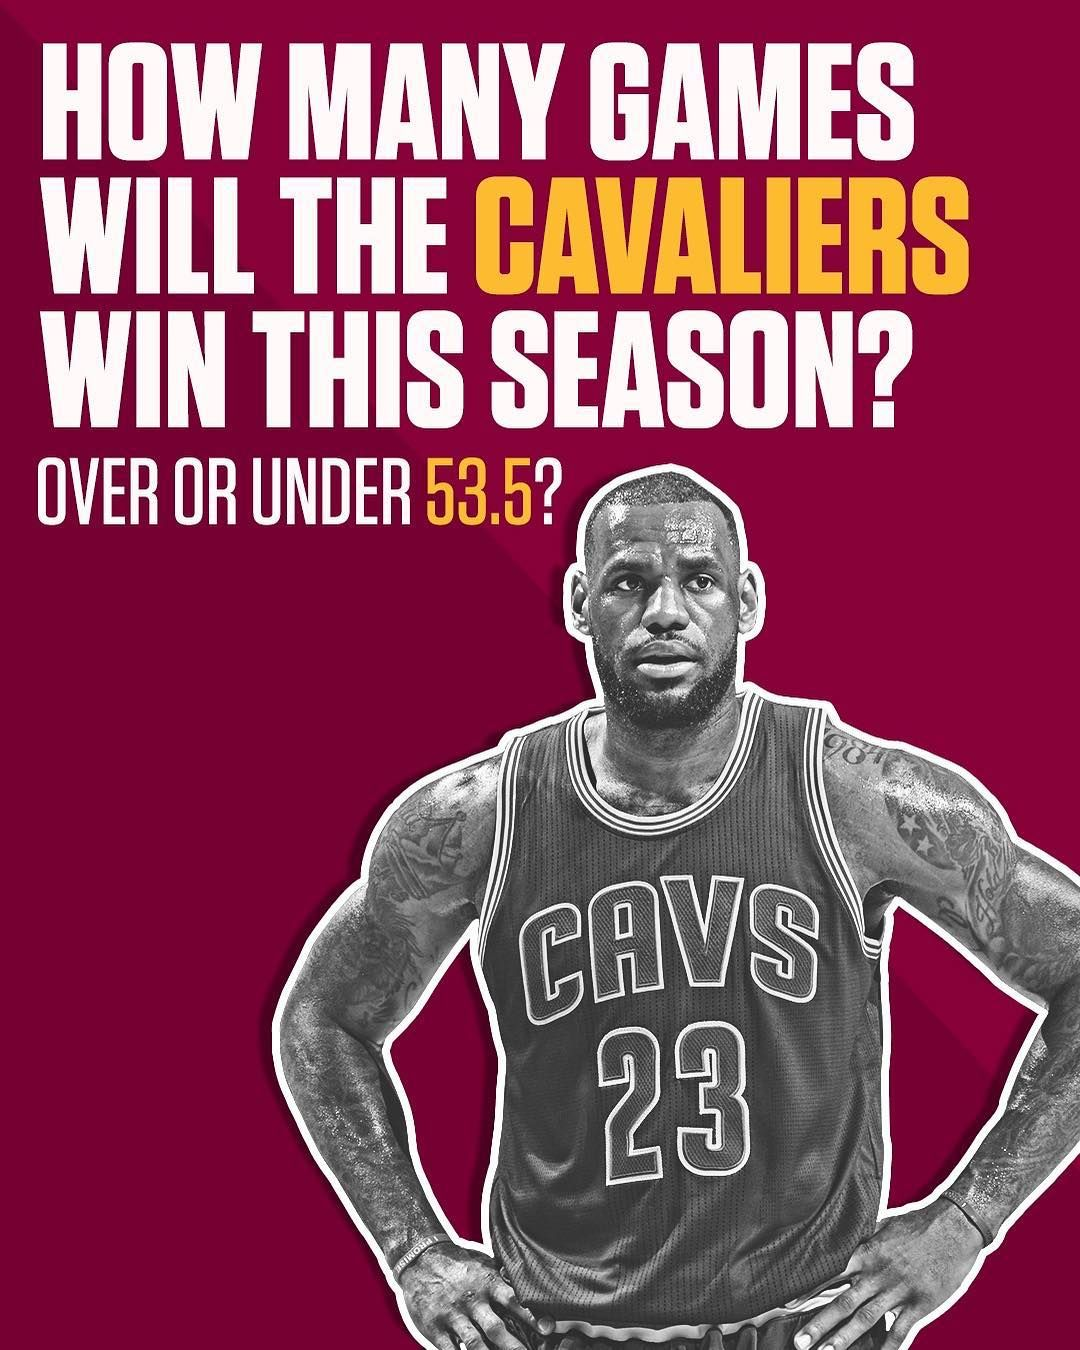 This Is The Lowest Preseason Over Under For The Cavs Since Lebron Returned To Cleveland Cavs Lebron Cleveland